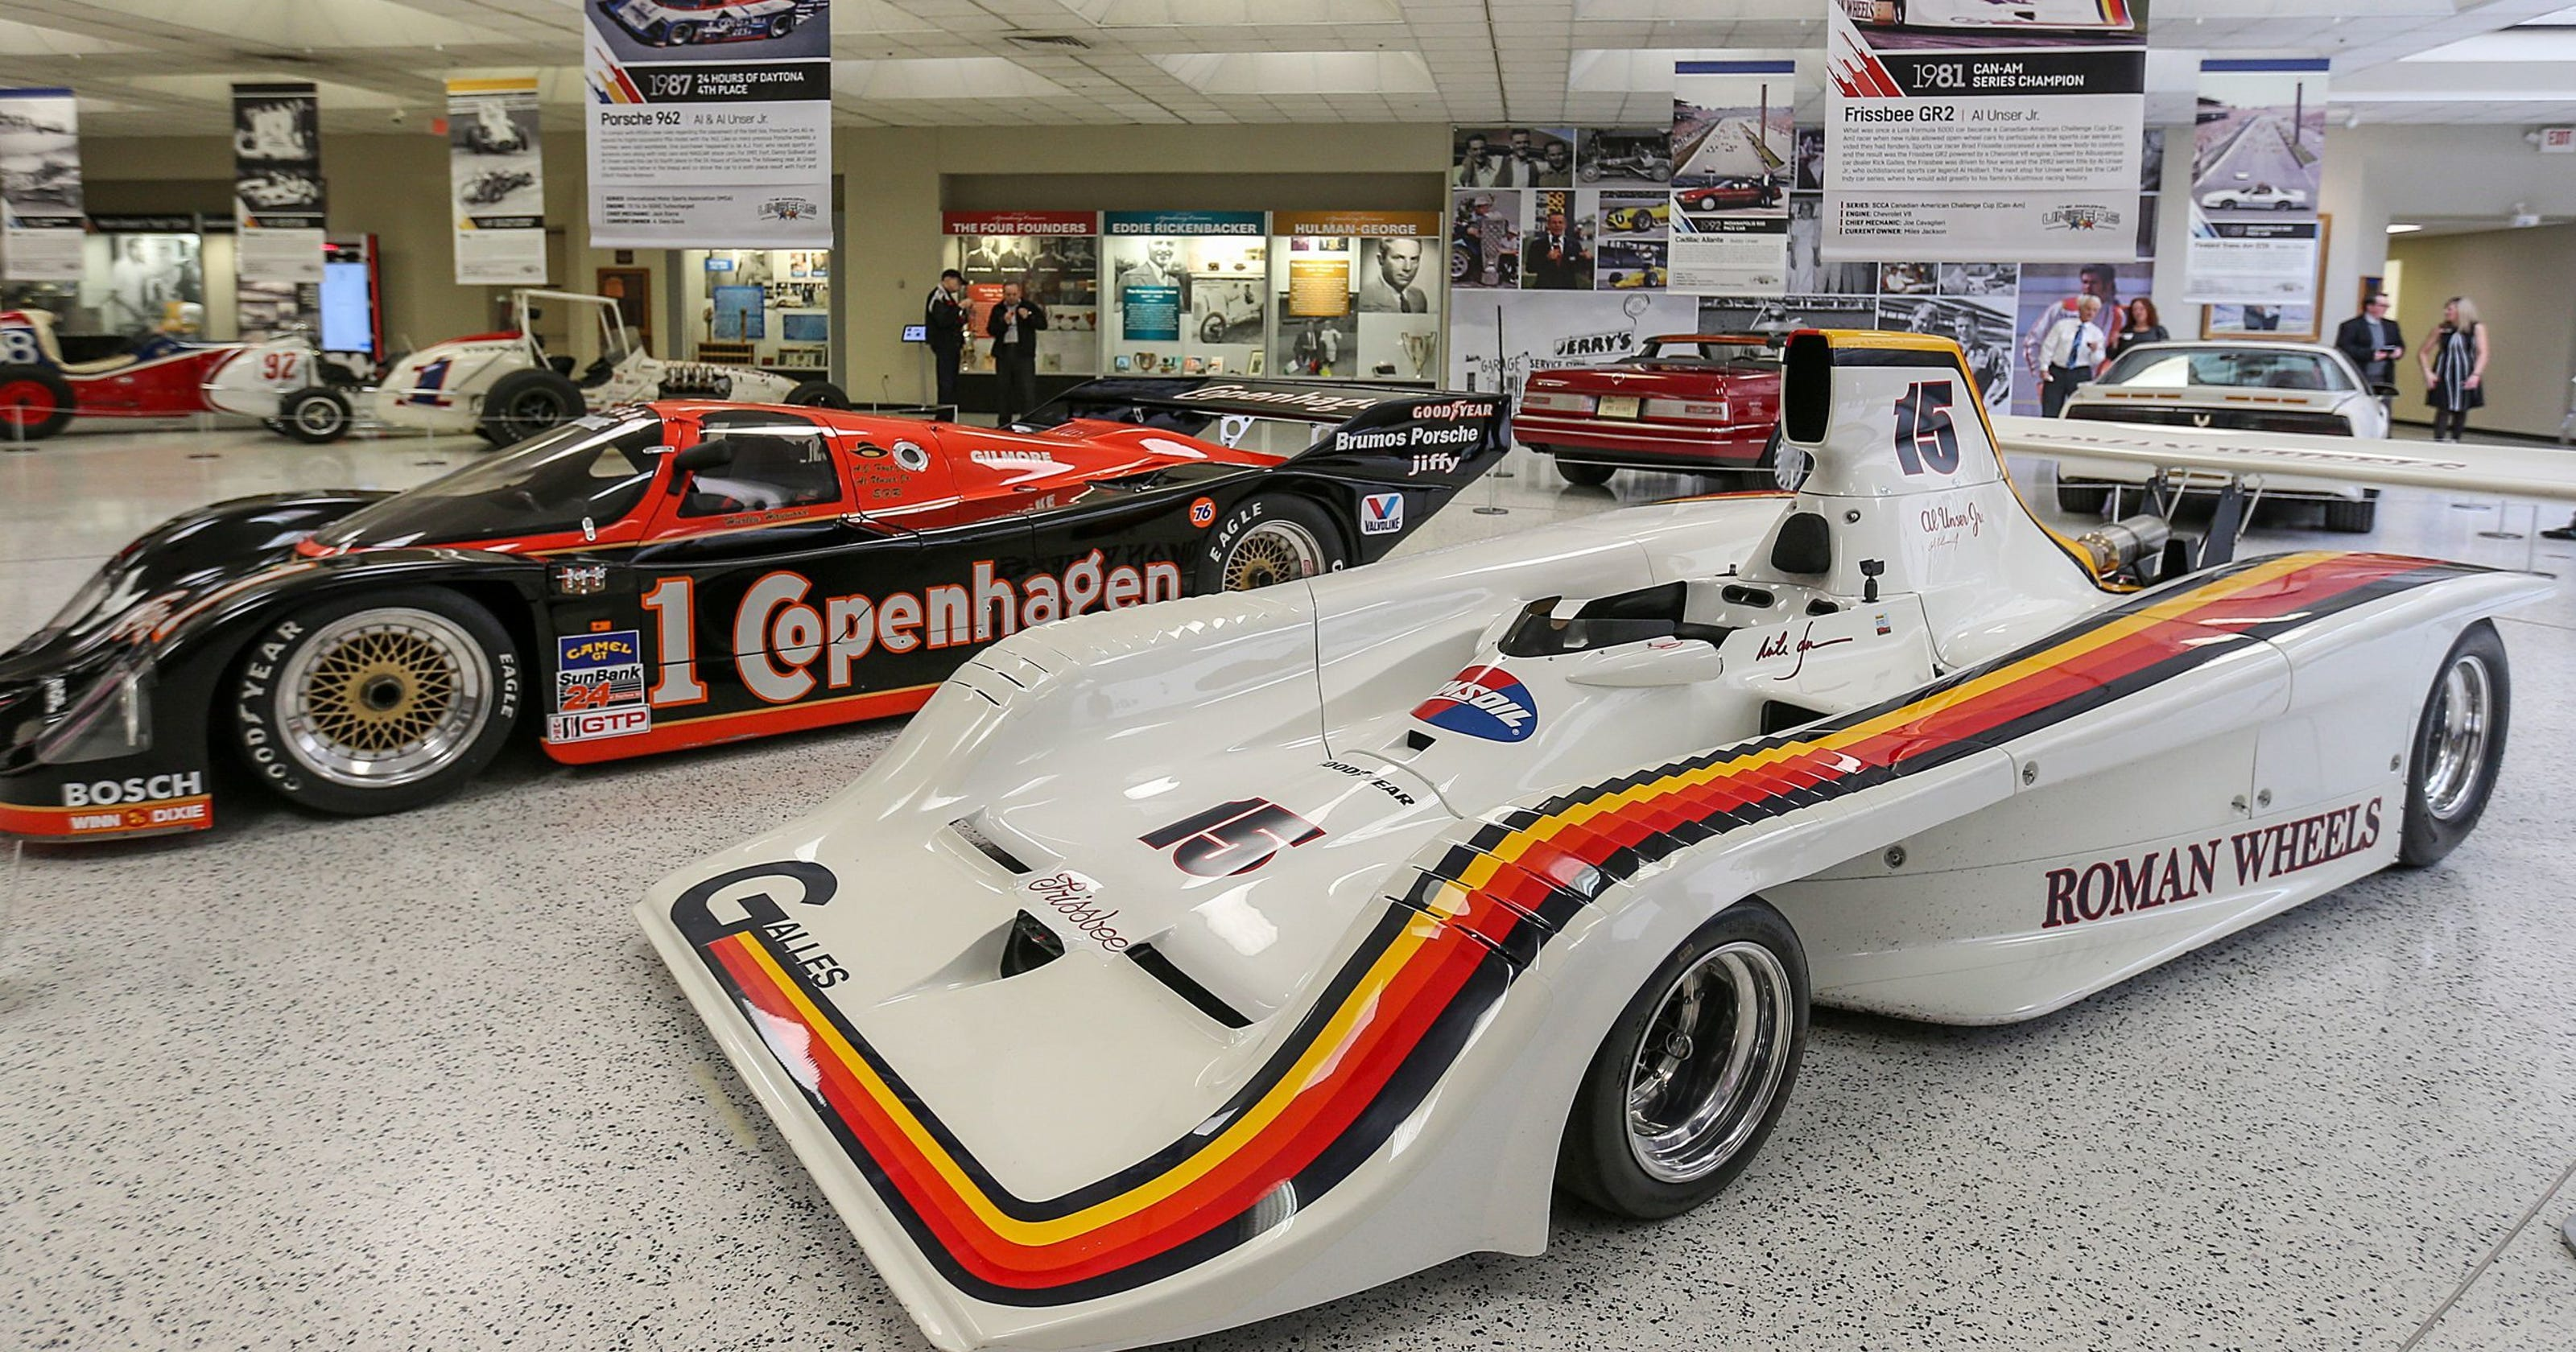 Swarens: Can Indy 500 museum go from missed opportunity to great asset?